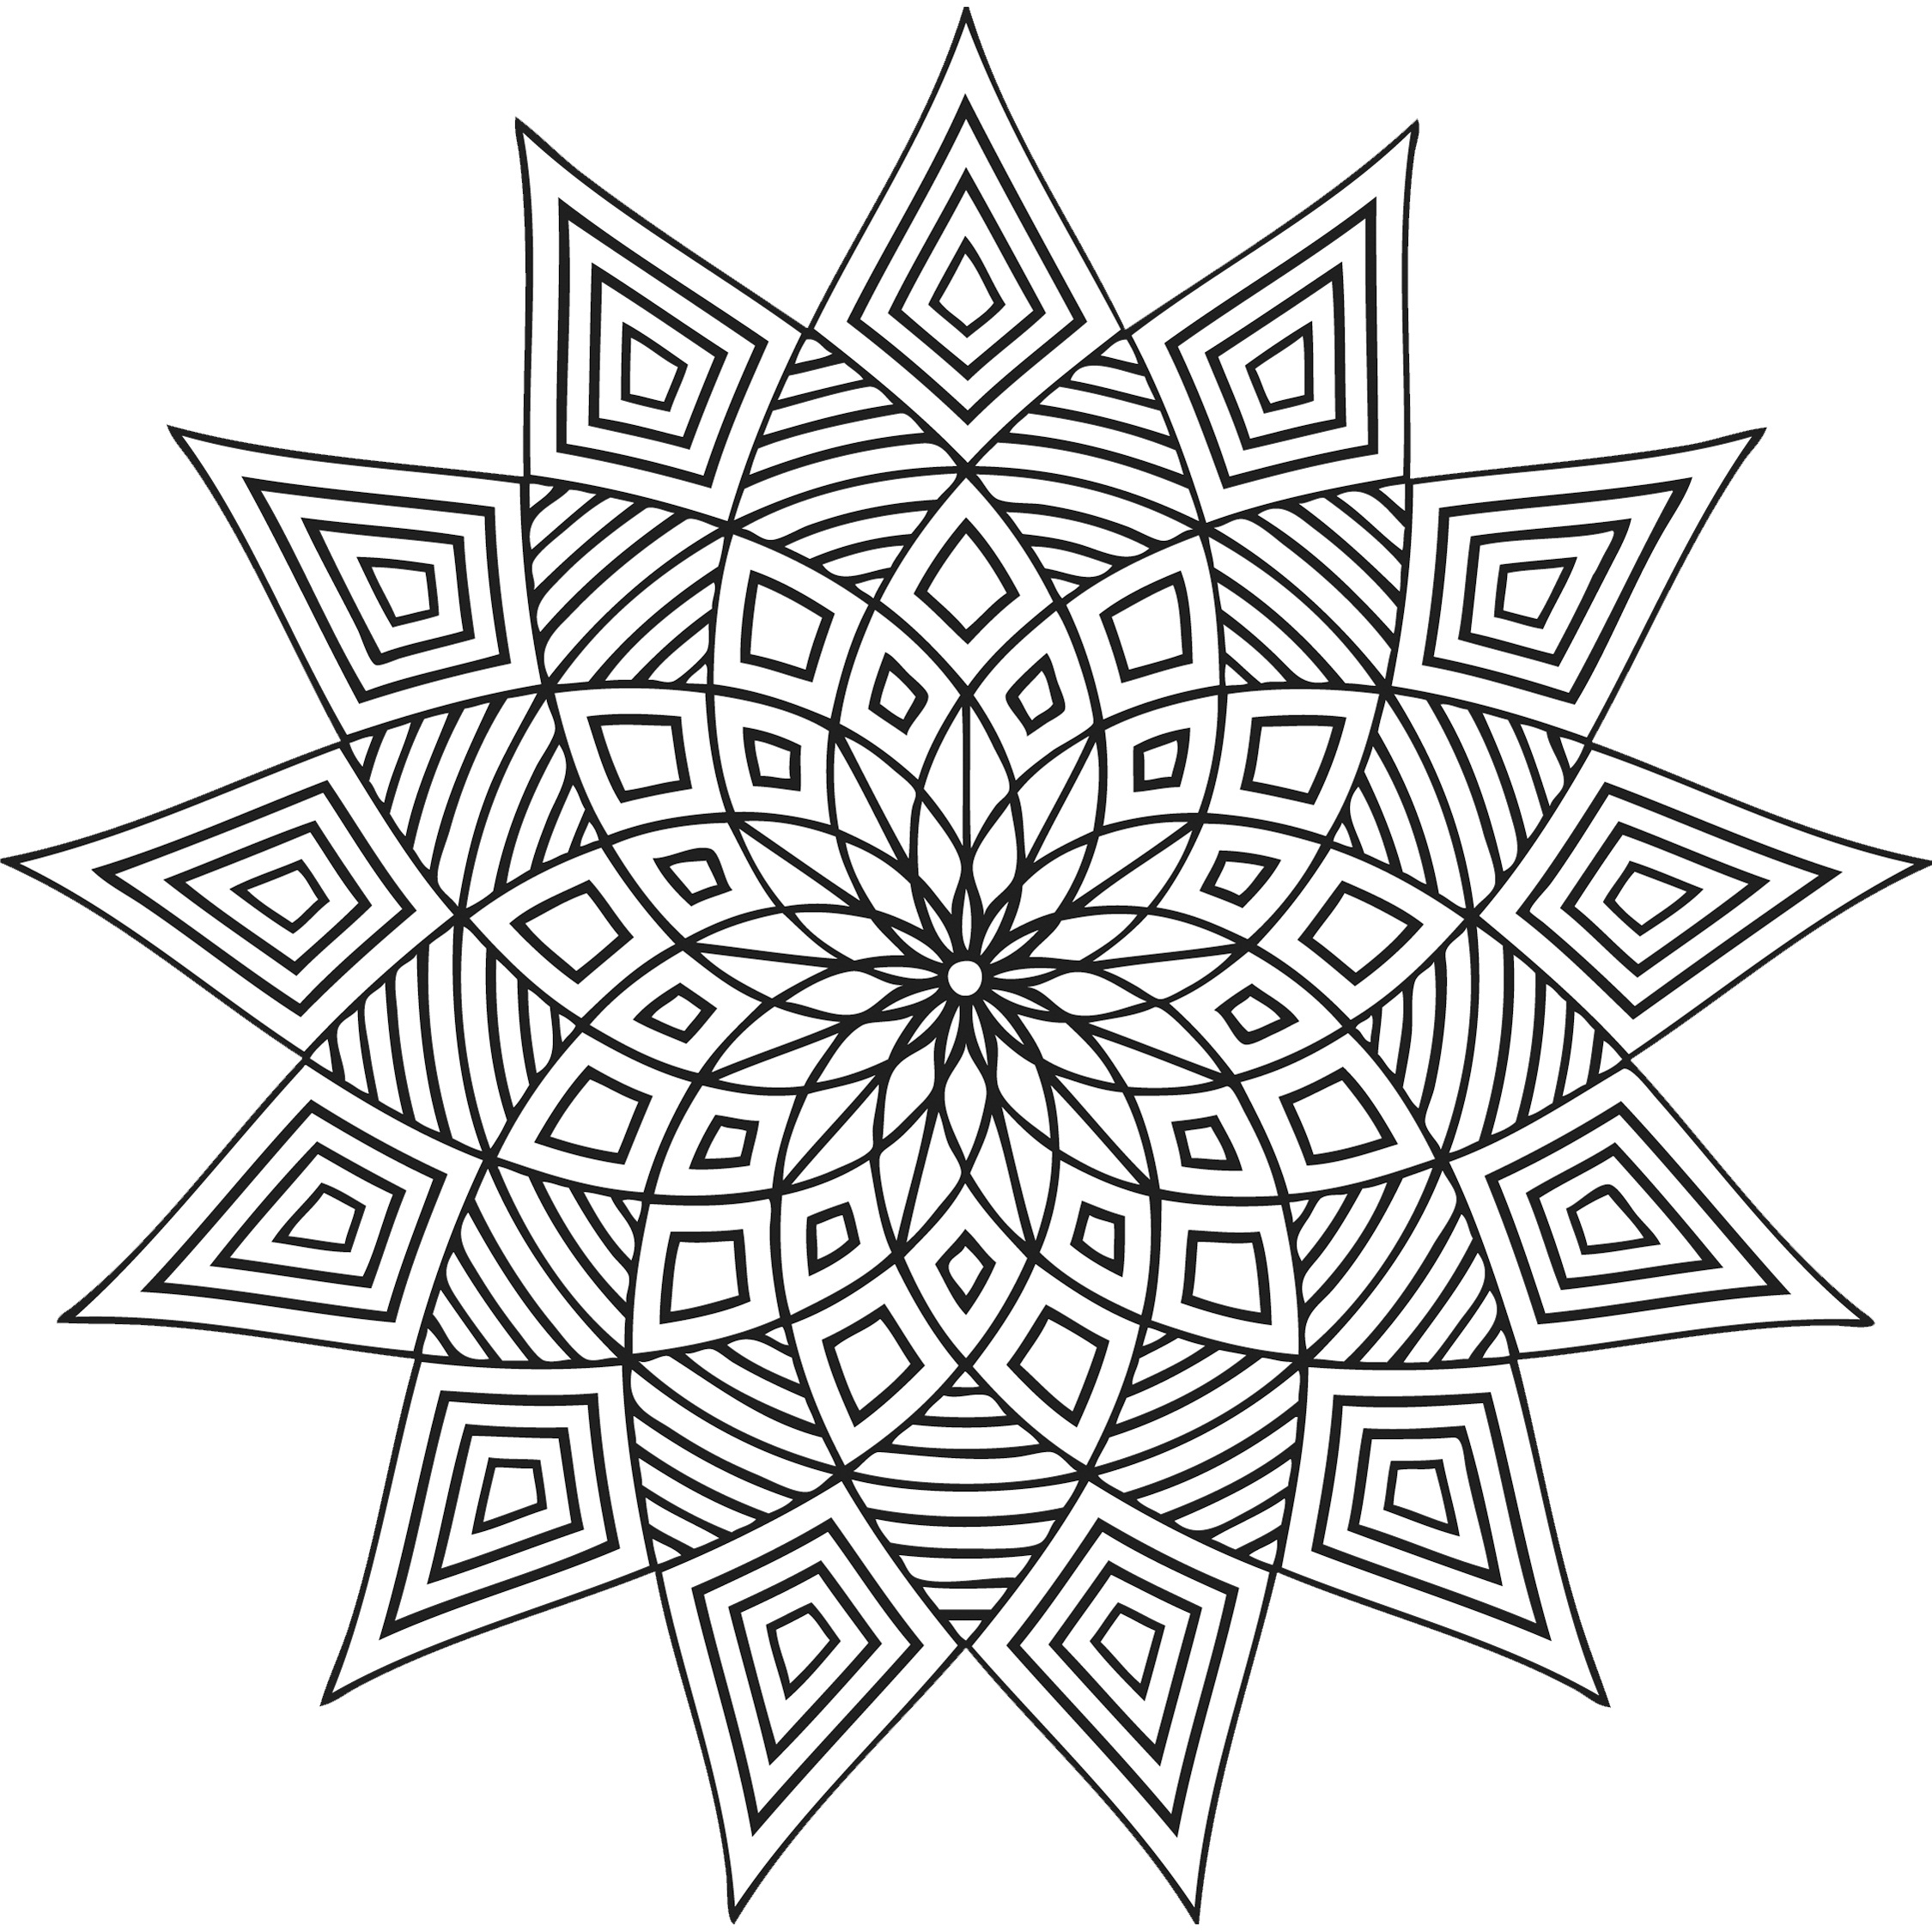 cool coloring designs to print 16 cool coloring pages of designs images cool geometric cool designs coloring print to